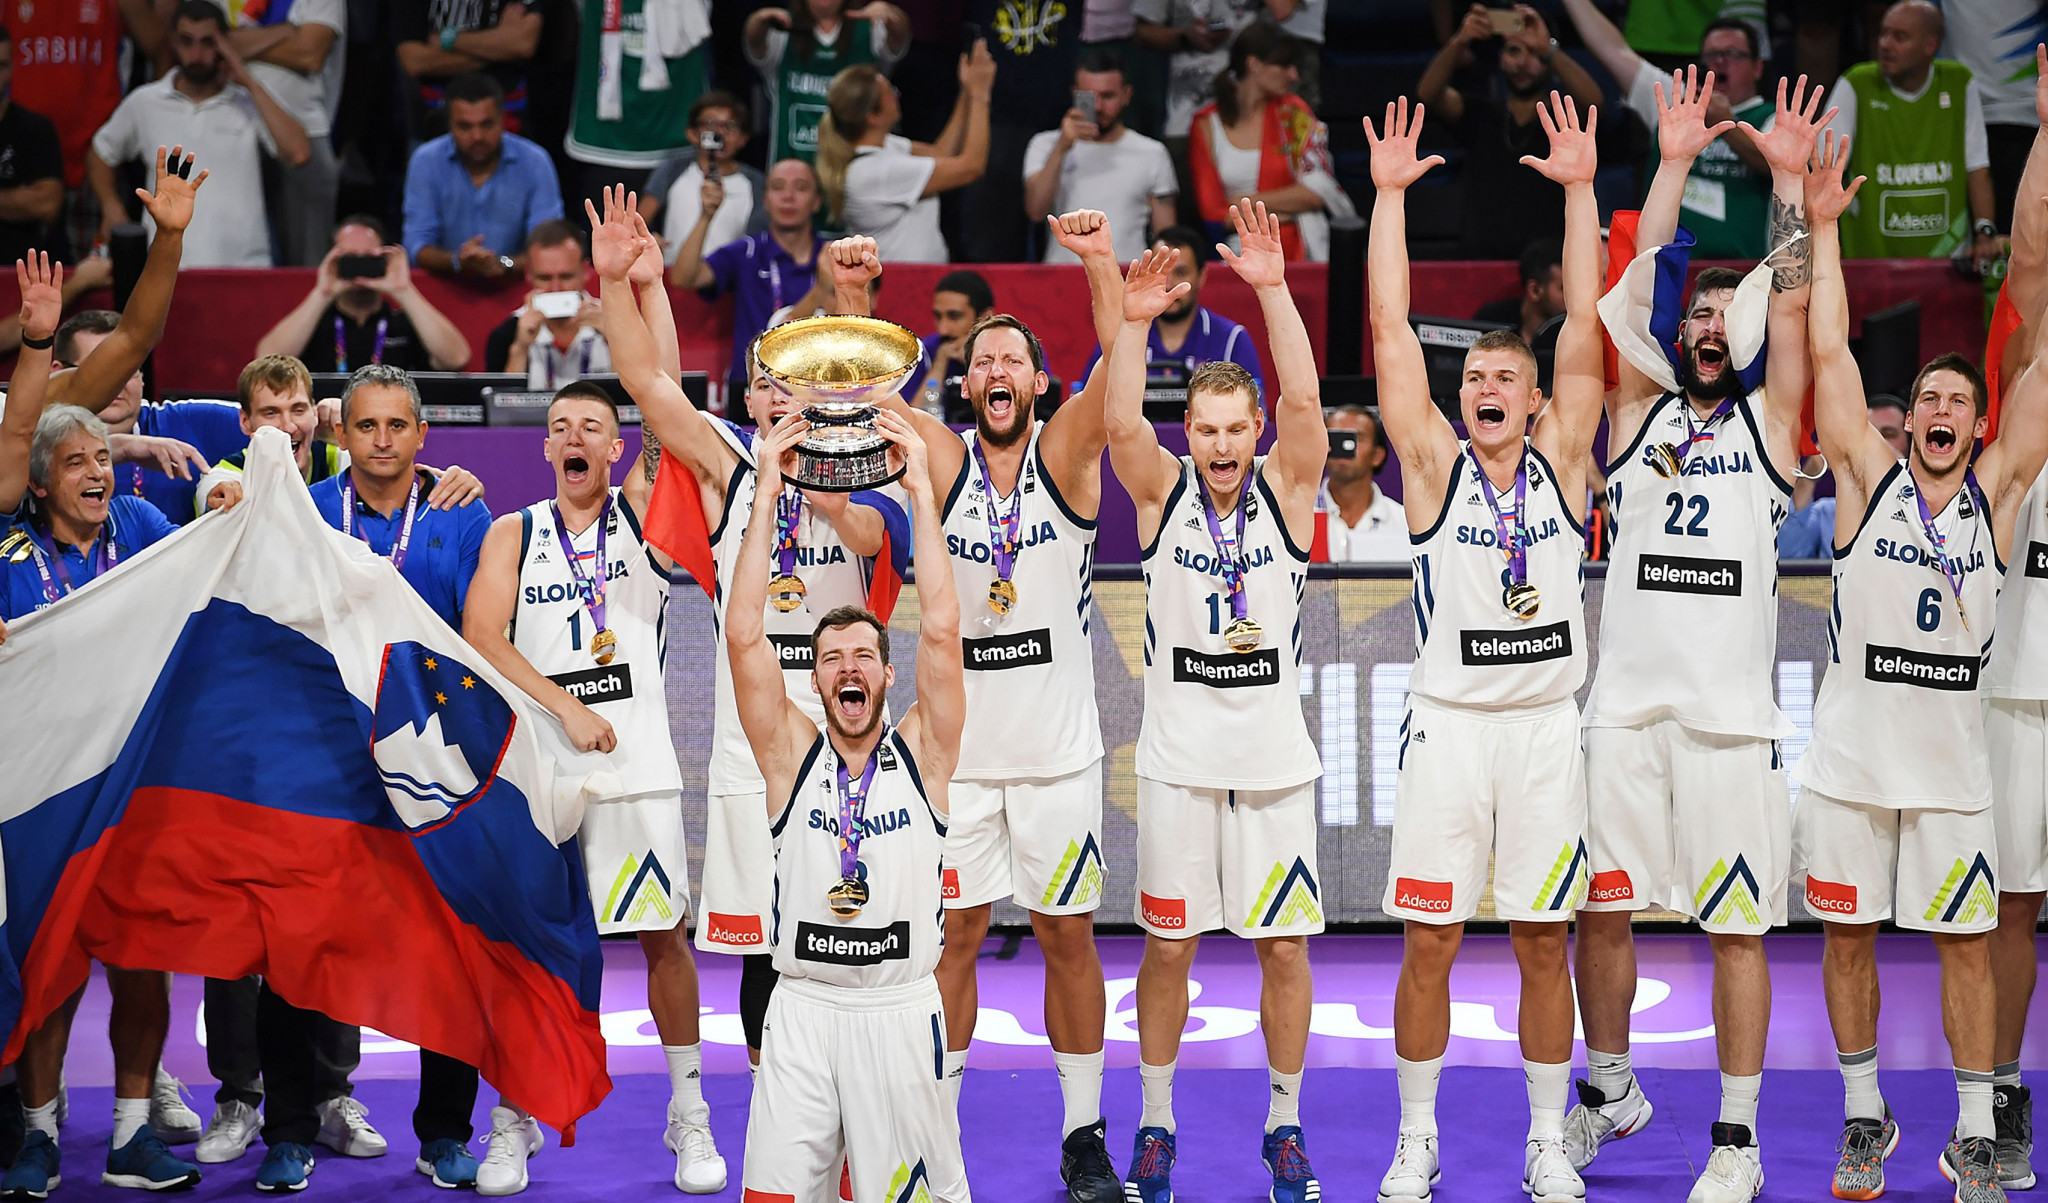 Winners of FIBA EuroBasker 2017, Slovenia, have applied to host the 2021 edition ©Getty Images